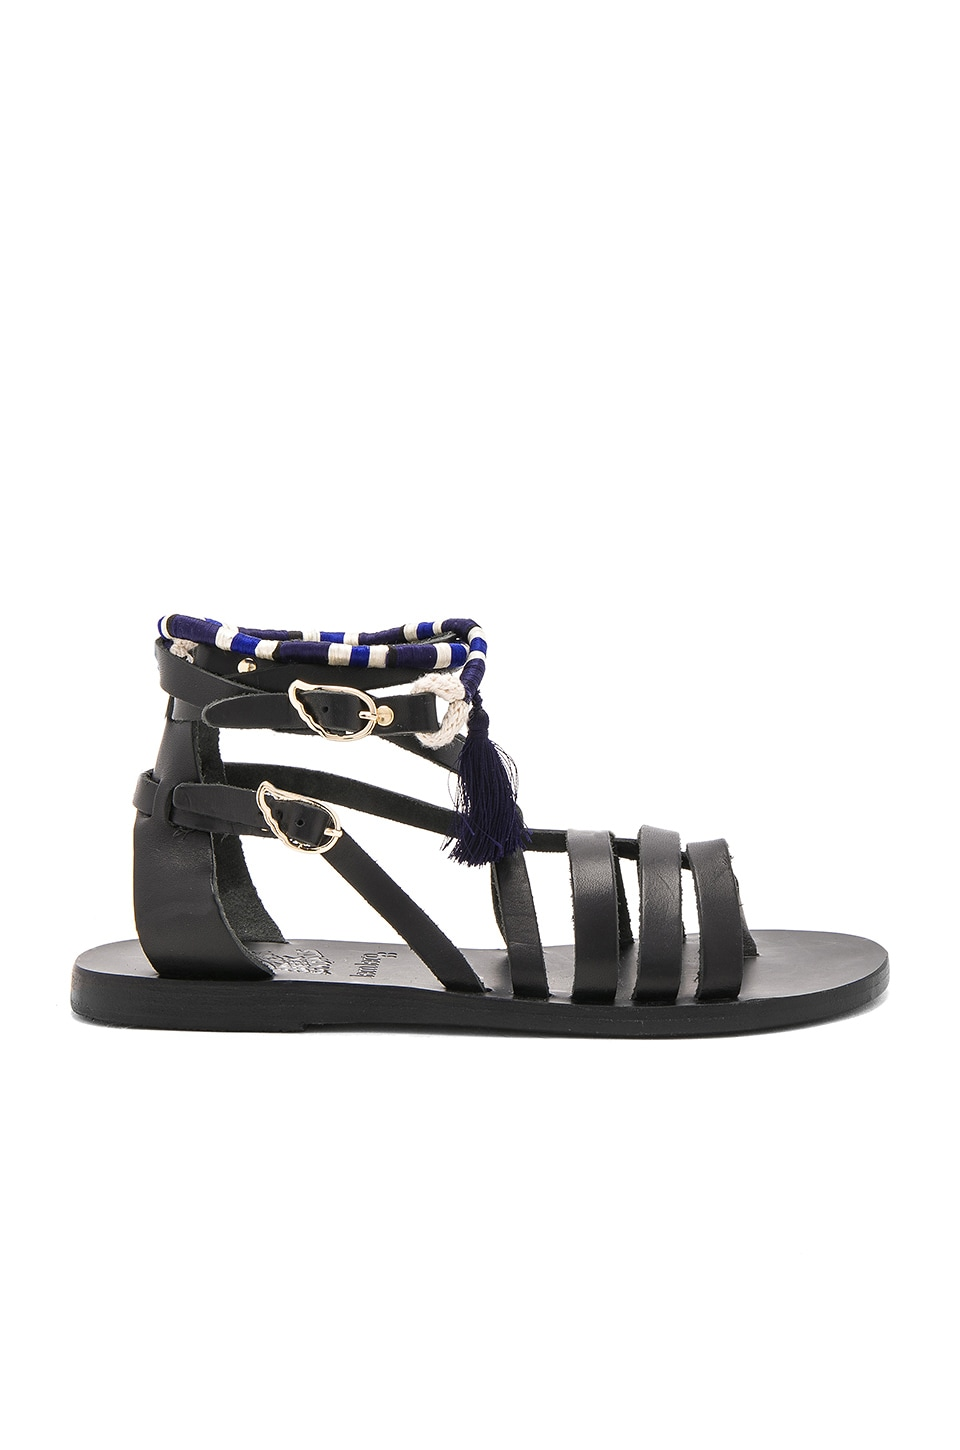 x lemlem Satira Wrap Sandal by Ancient Greek Sandals